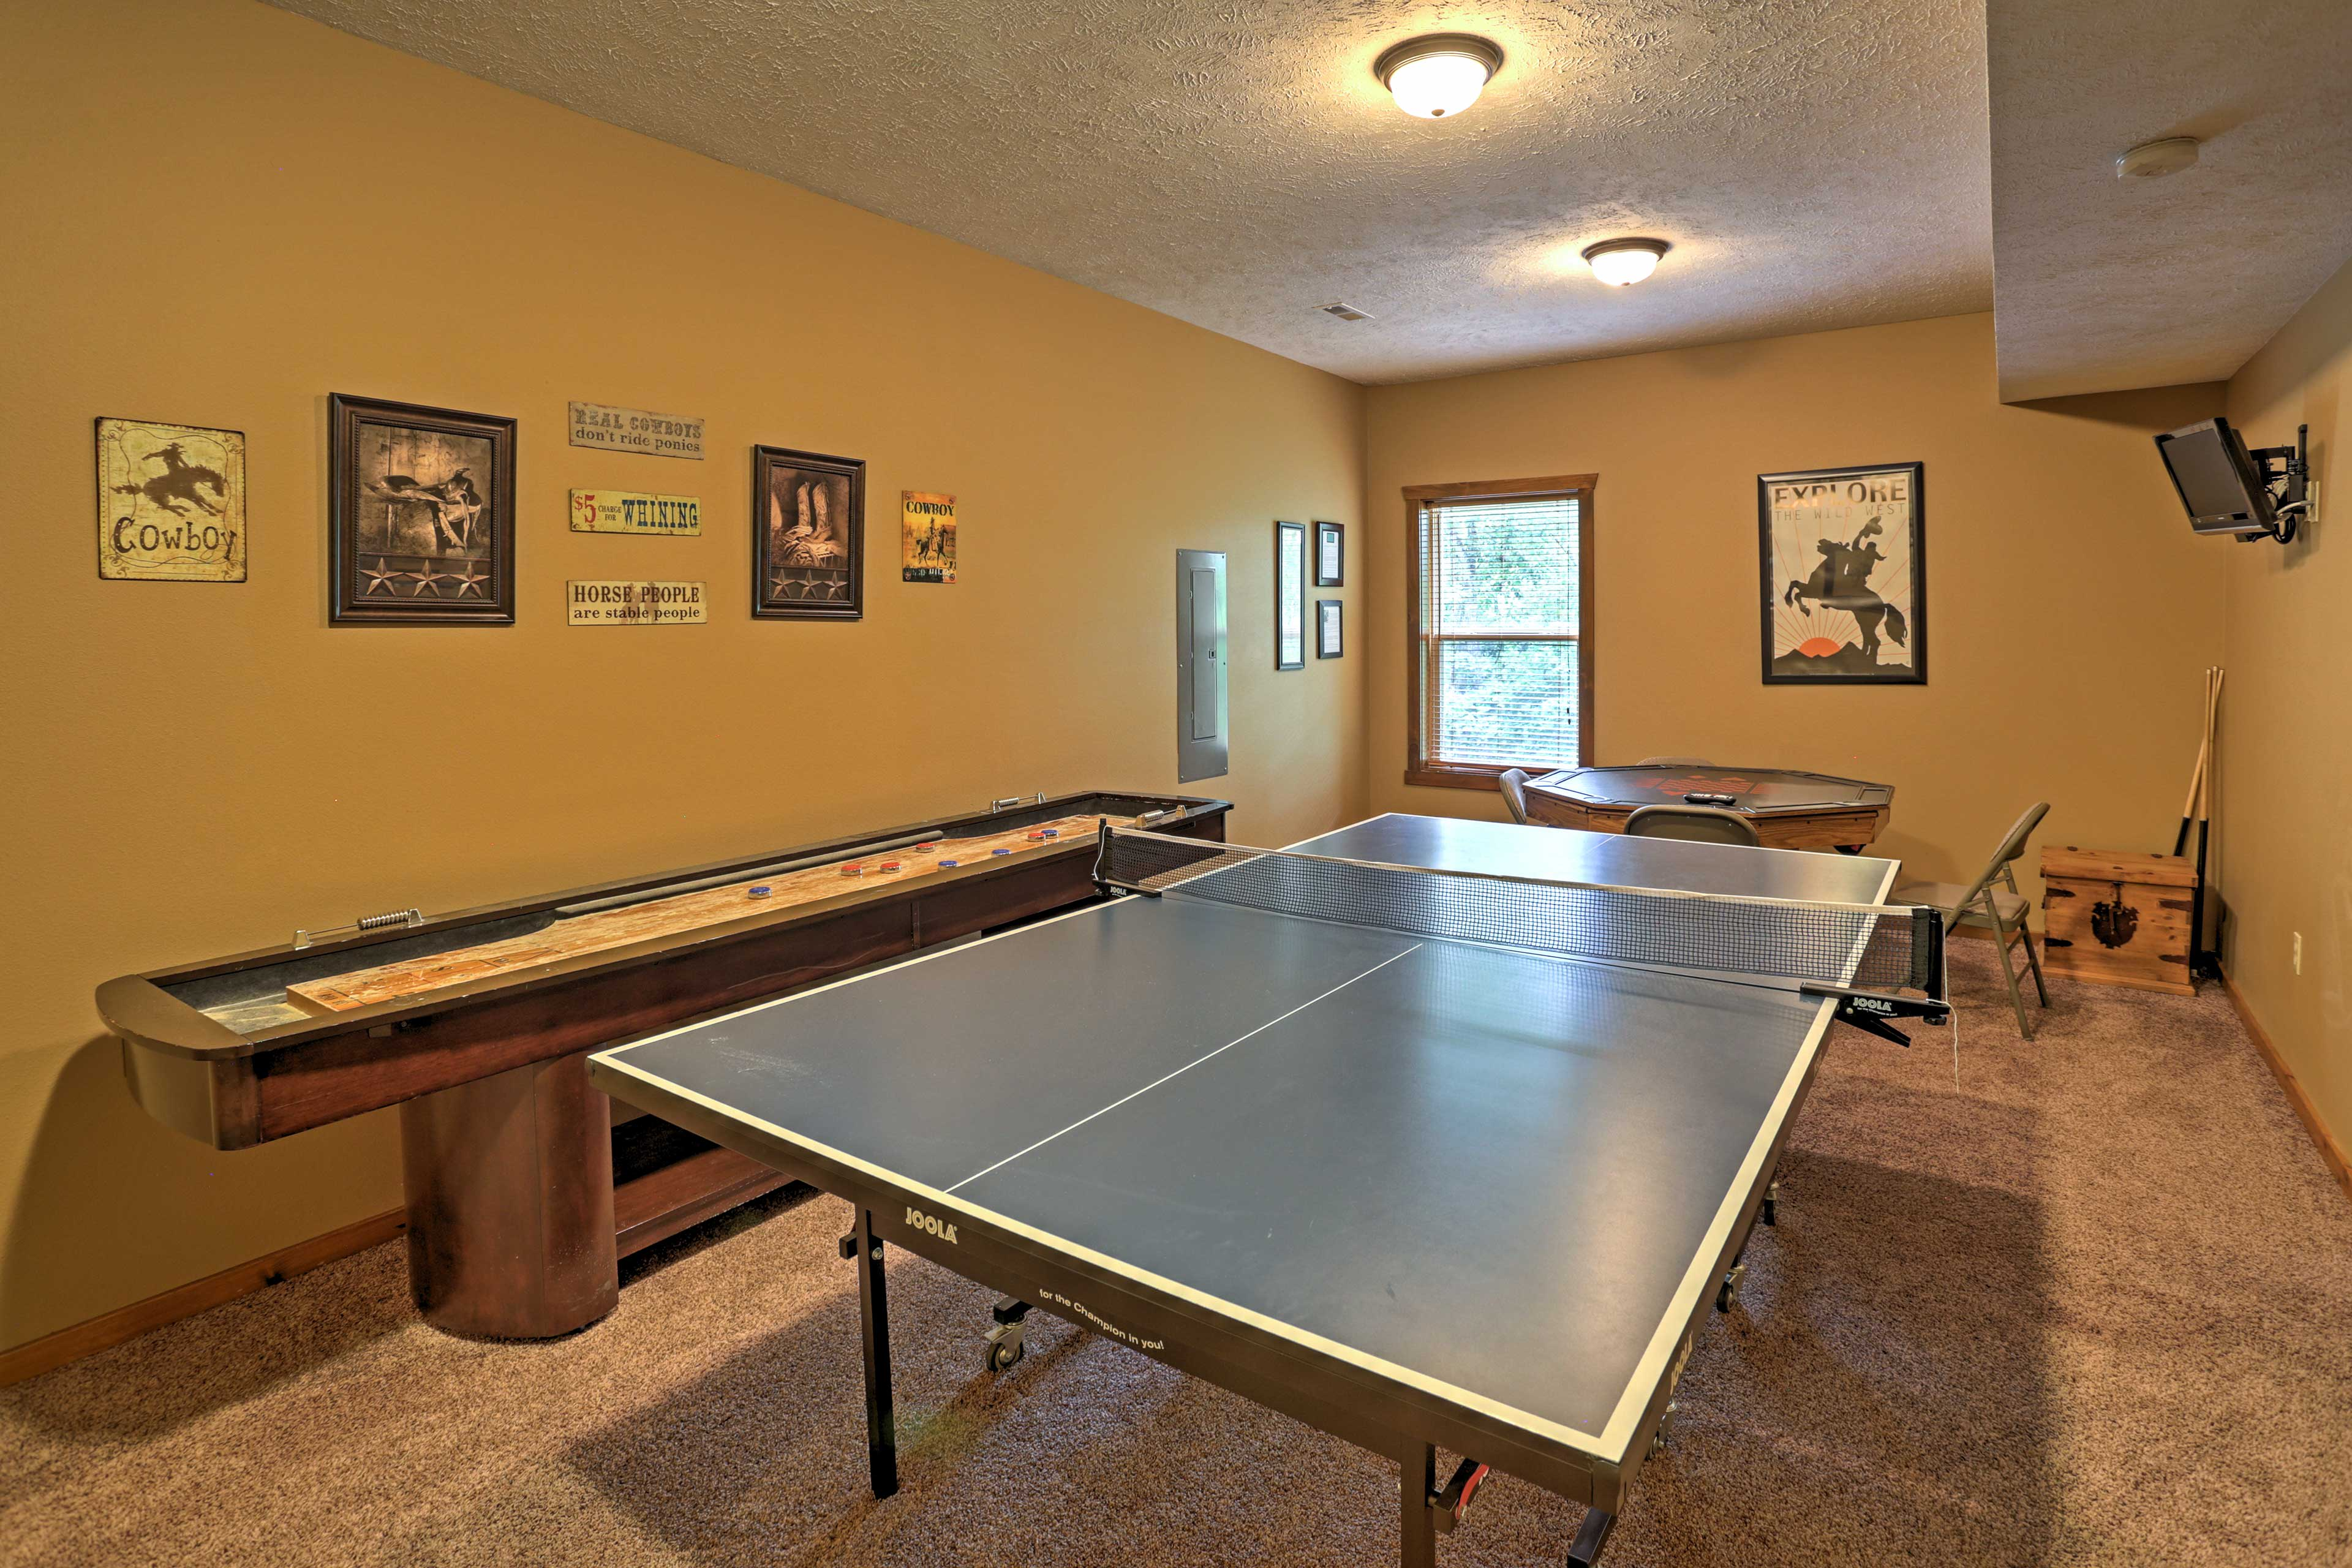 Game Room | Ping Pong Table | Card Table | Shuffleboard Table